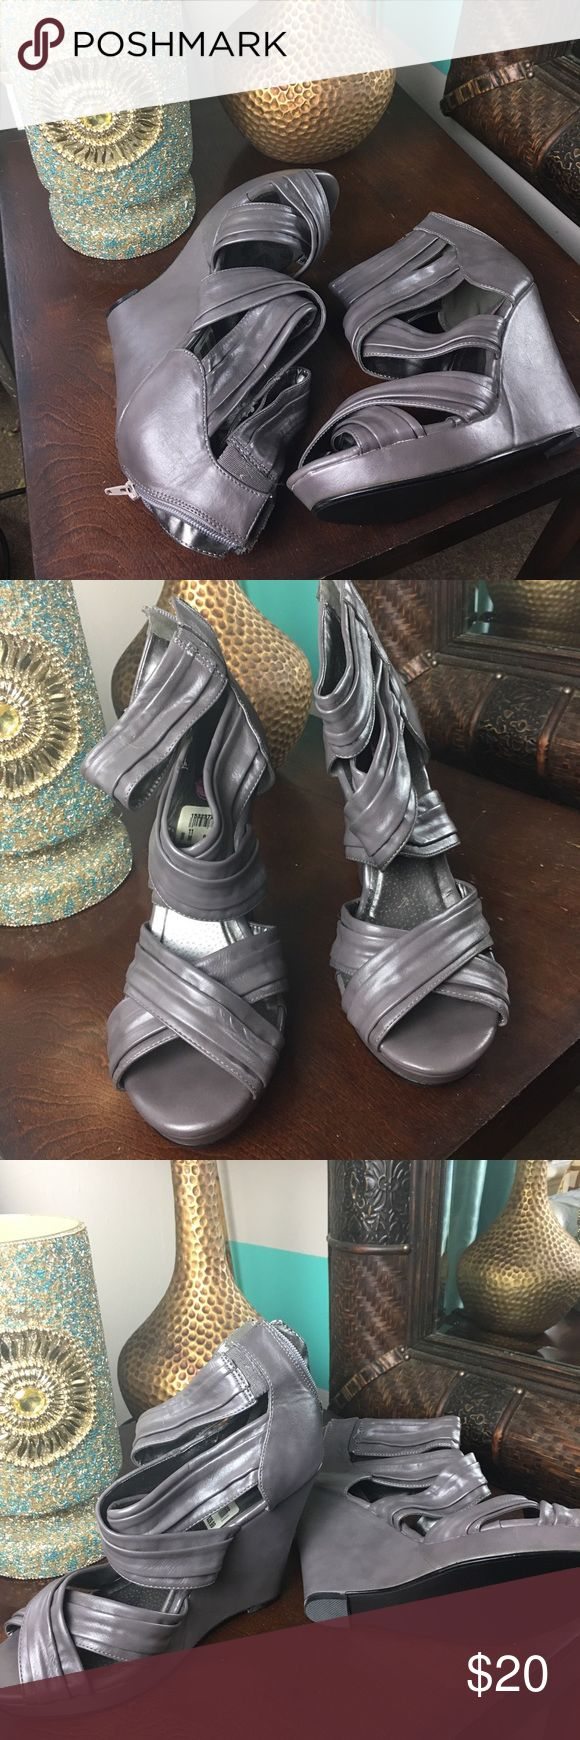 Gray wedges Classic wedge that will compliment any outfit. Never worn. Shoes Wedges